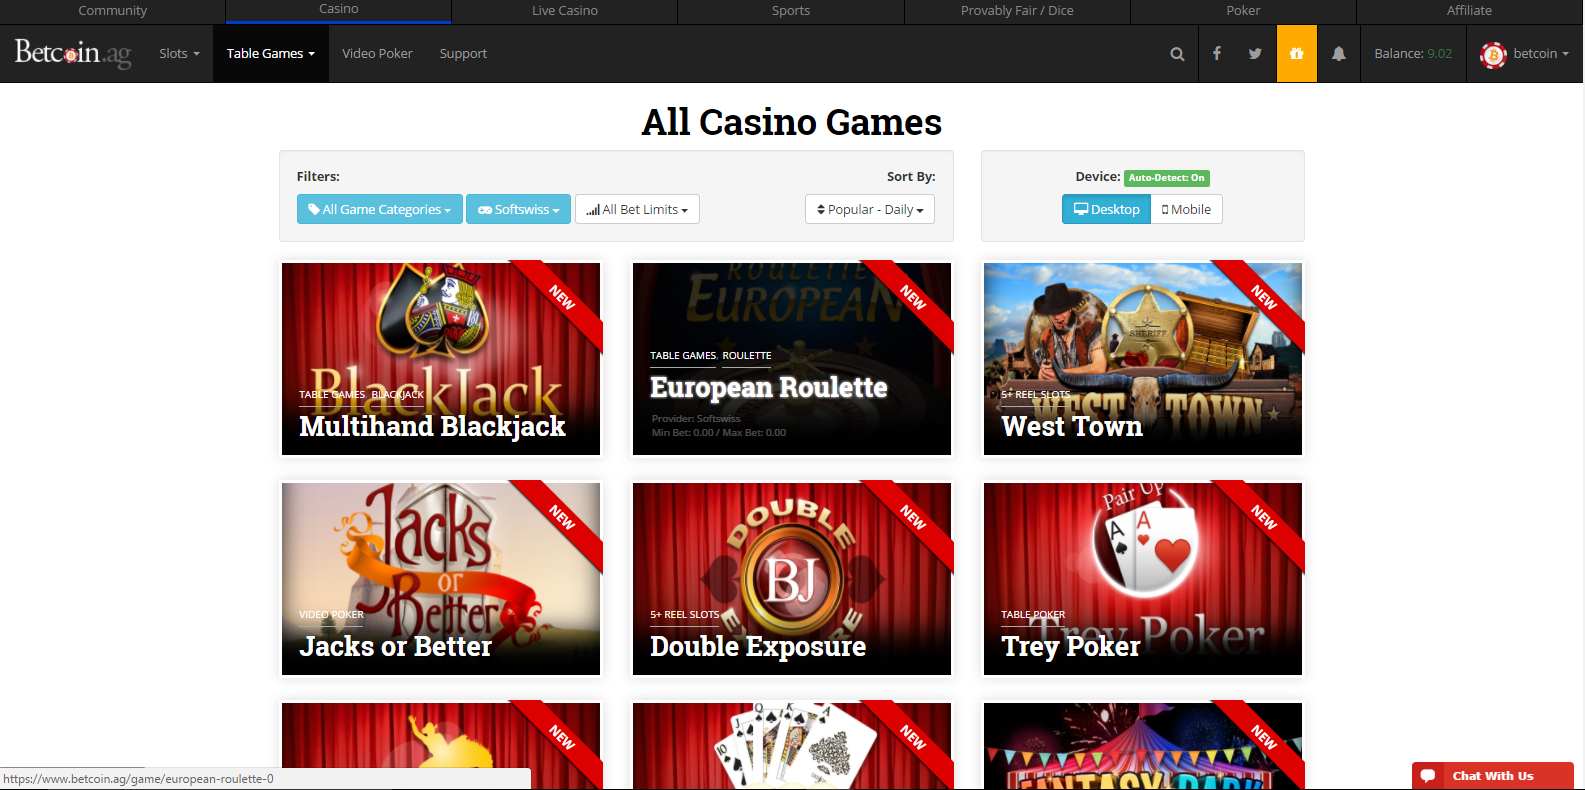 How to create a gambling site play blackjack with real money